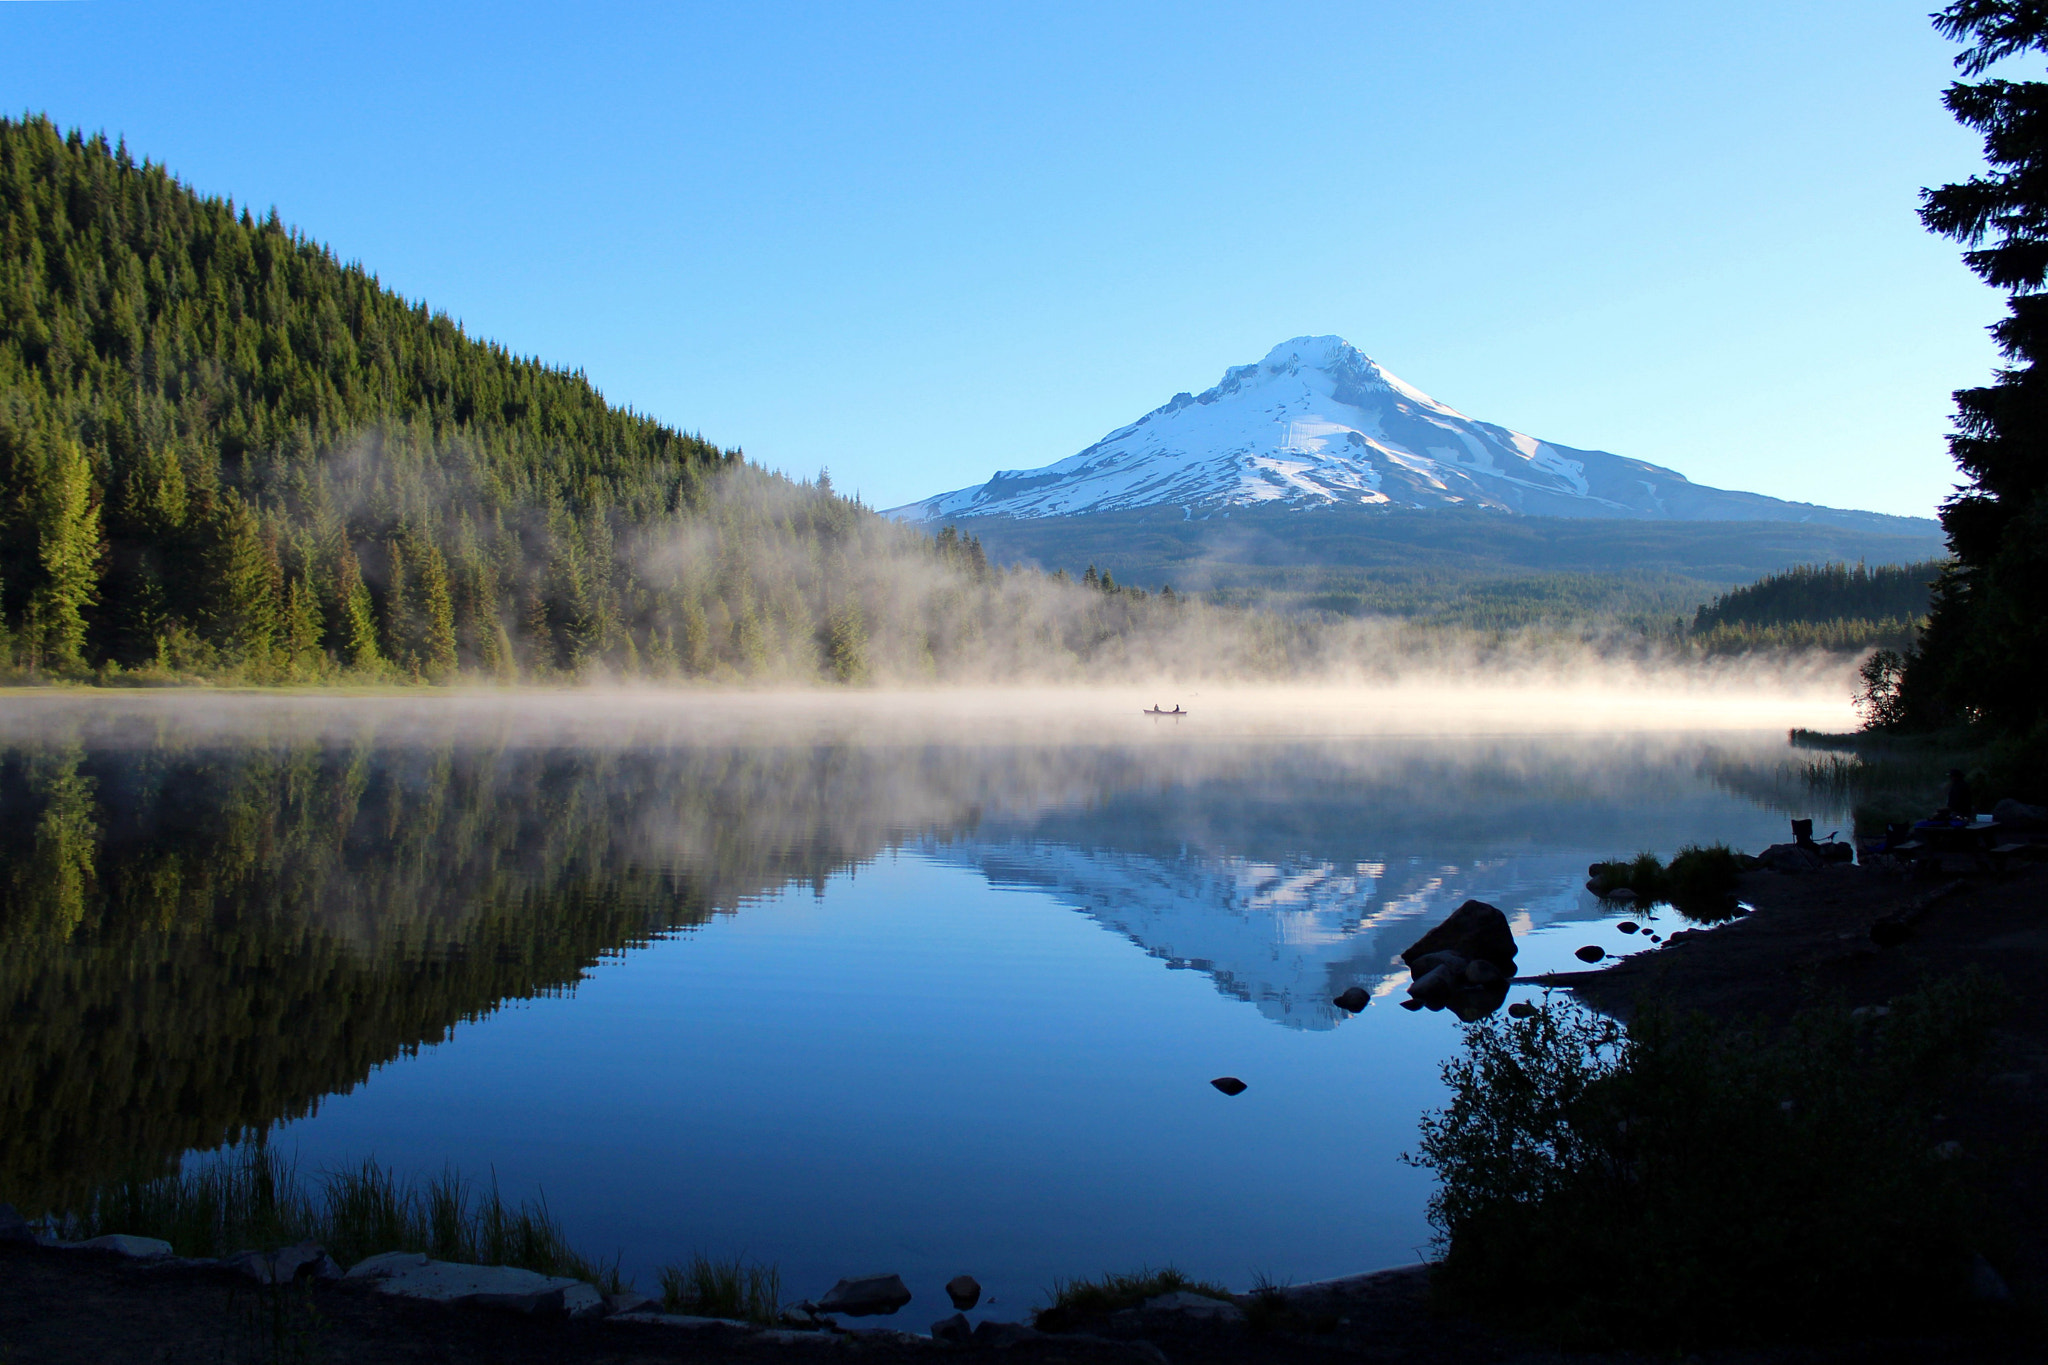 Photograph Morning Reflections on Trillium Lake by Cole Chase on 500px